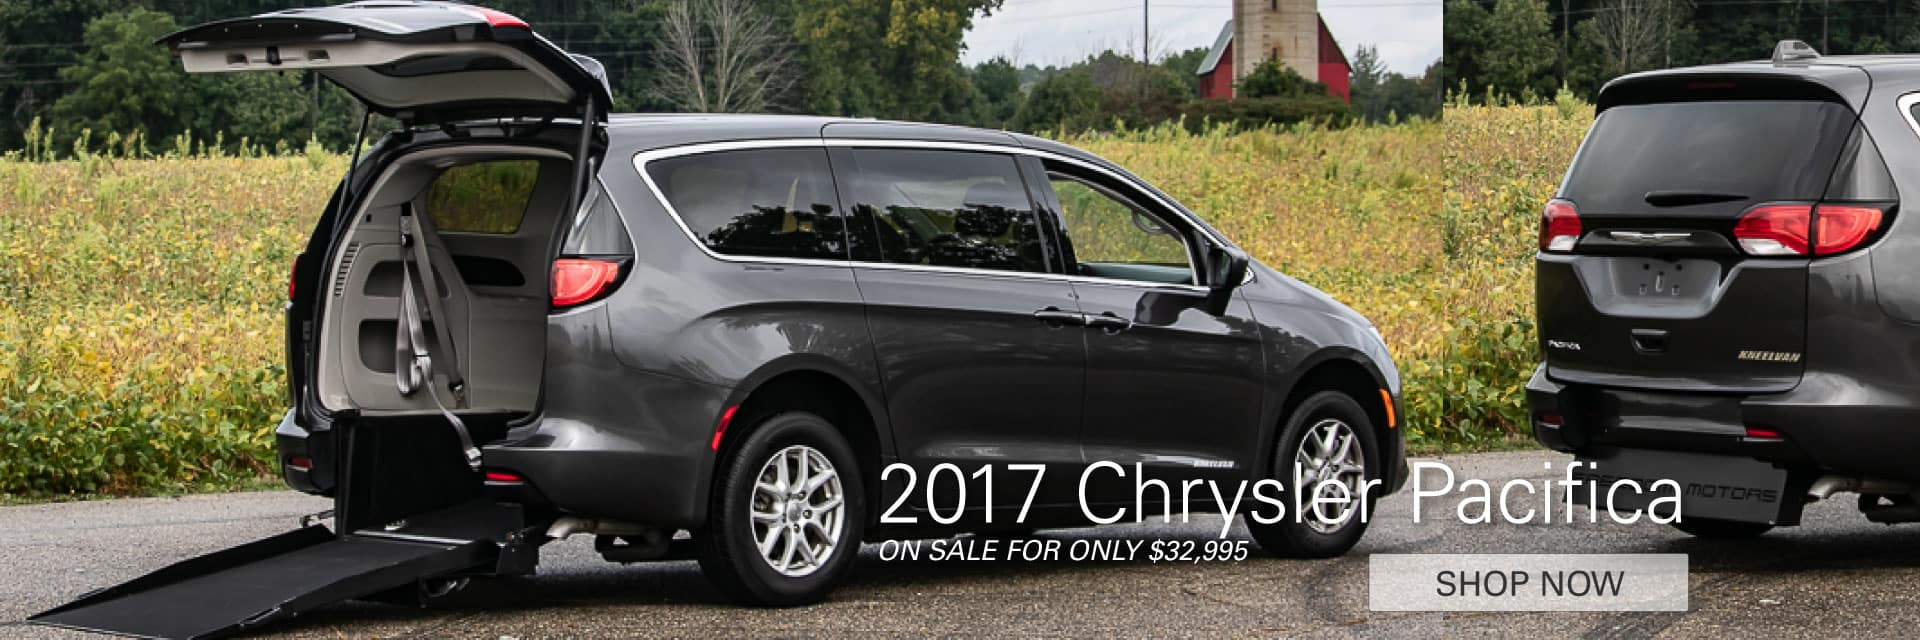 2017 Chrysler Pacifica On Sale Now